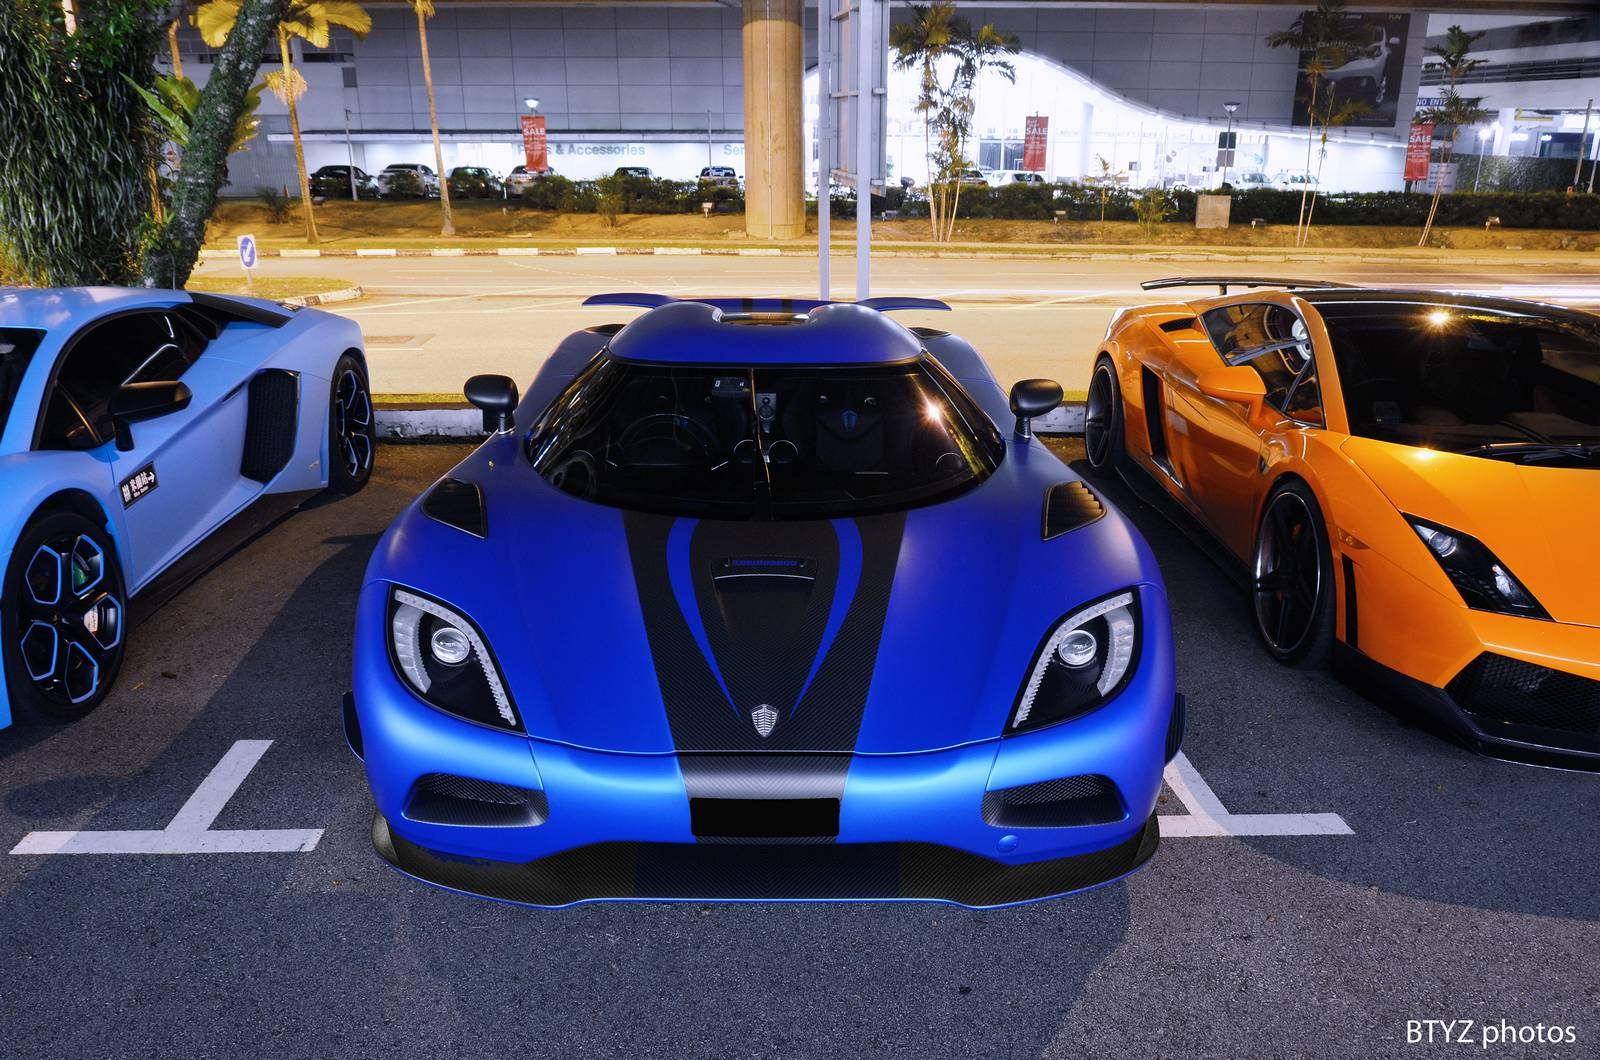 Photo Of The Day: The $5.3 Million Koenigsegg Agera S in ...